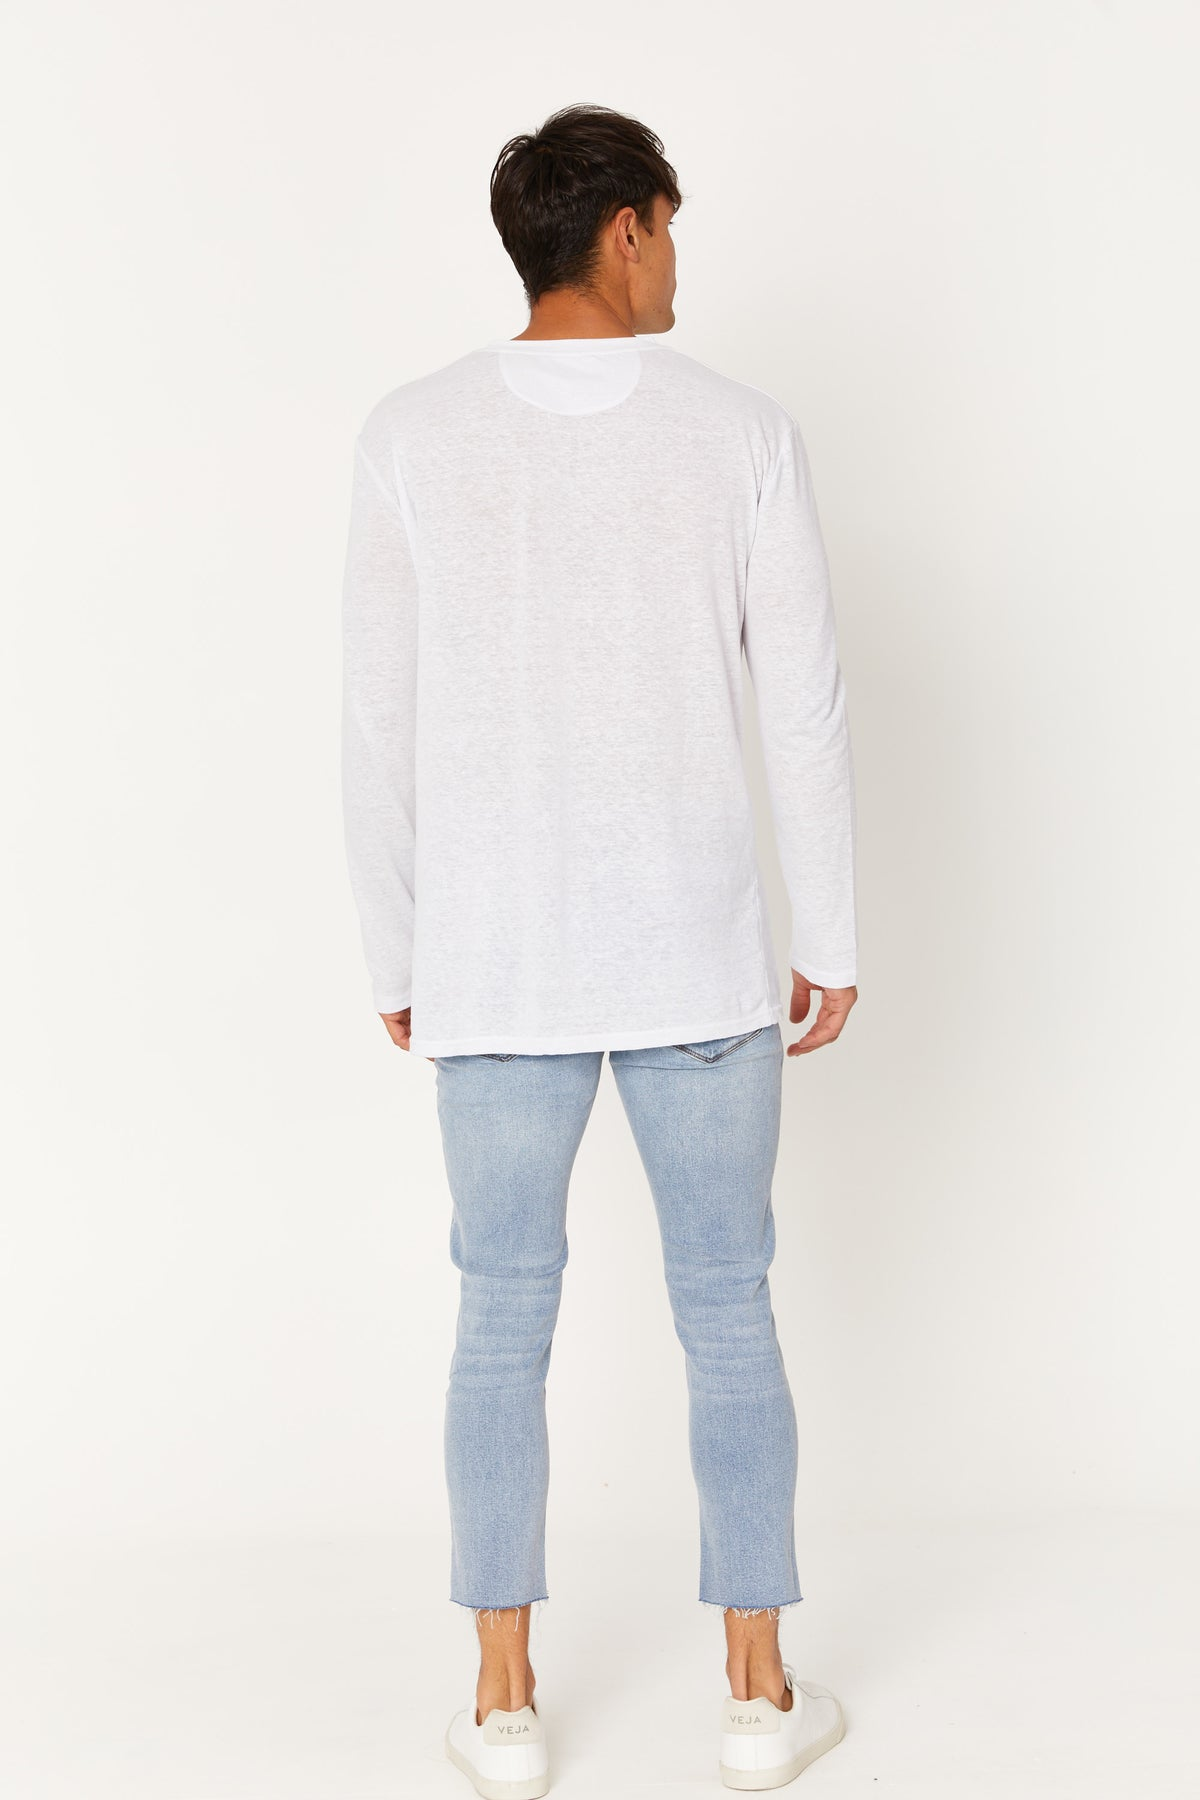 NTH Linen Long Sleeve White